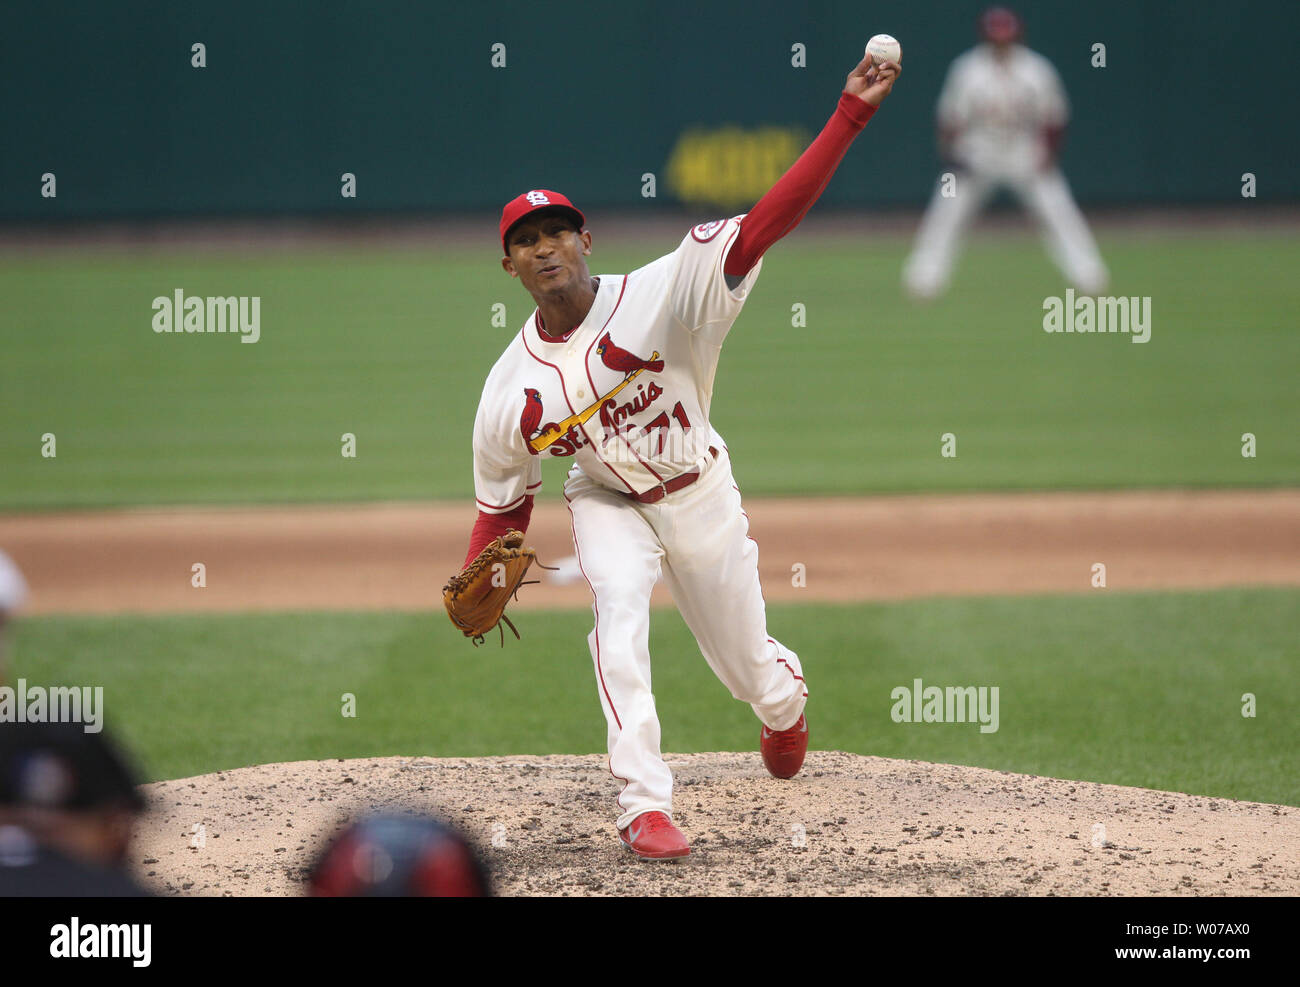 St. Louis Cardinals pitcher Sam Freeman delivers a pitch to the Chicago Cubs in the sixth inning at Busch Stadium in St. Louis on September 28, 2013. St. Louis defeated Chicago 6-2.  UPI/Bill Greenblatt Stock Photo